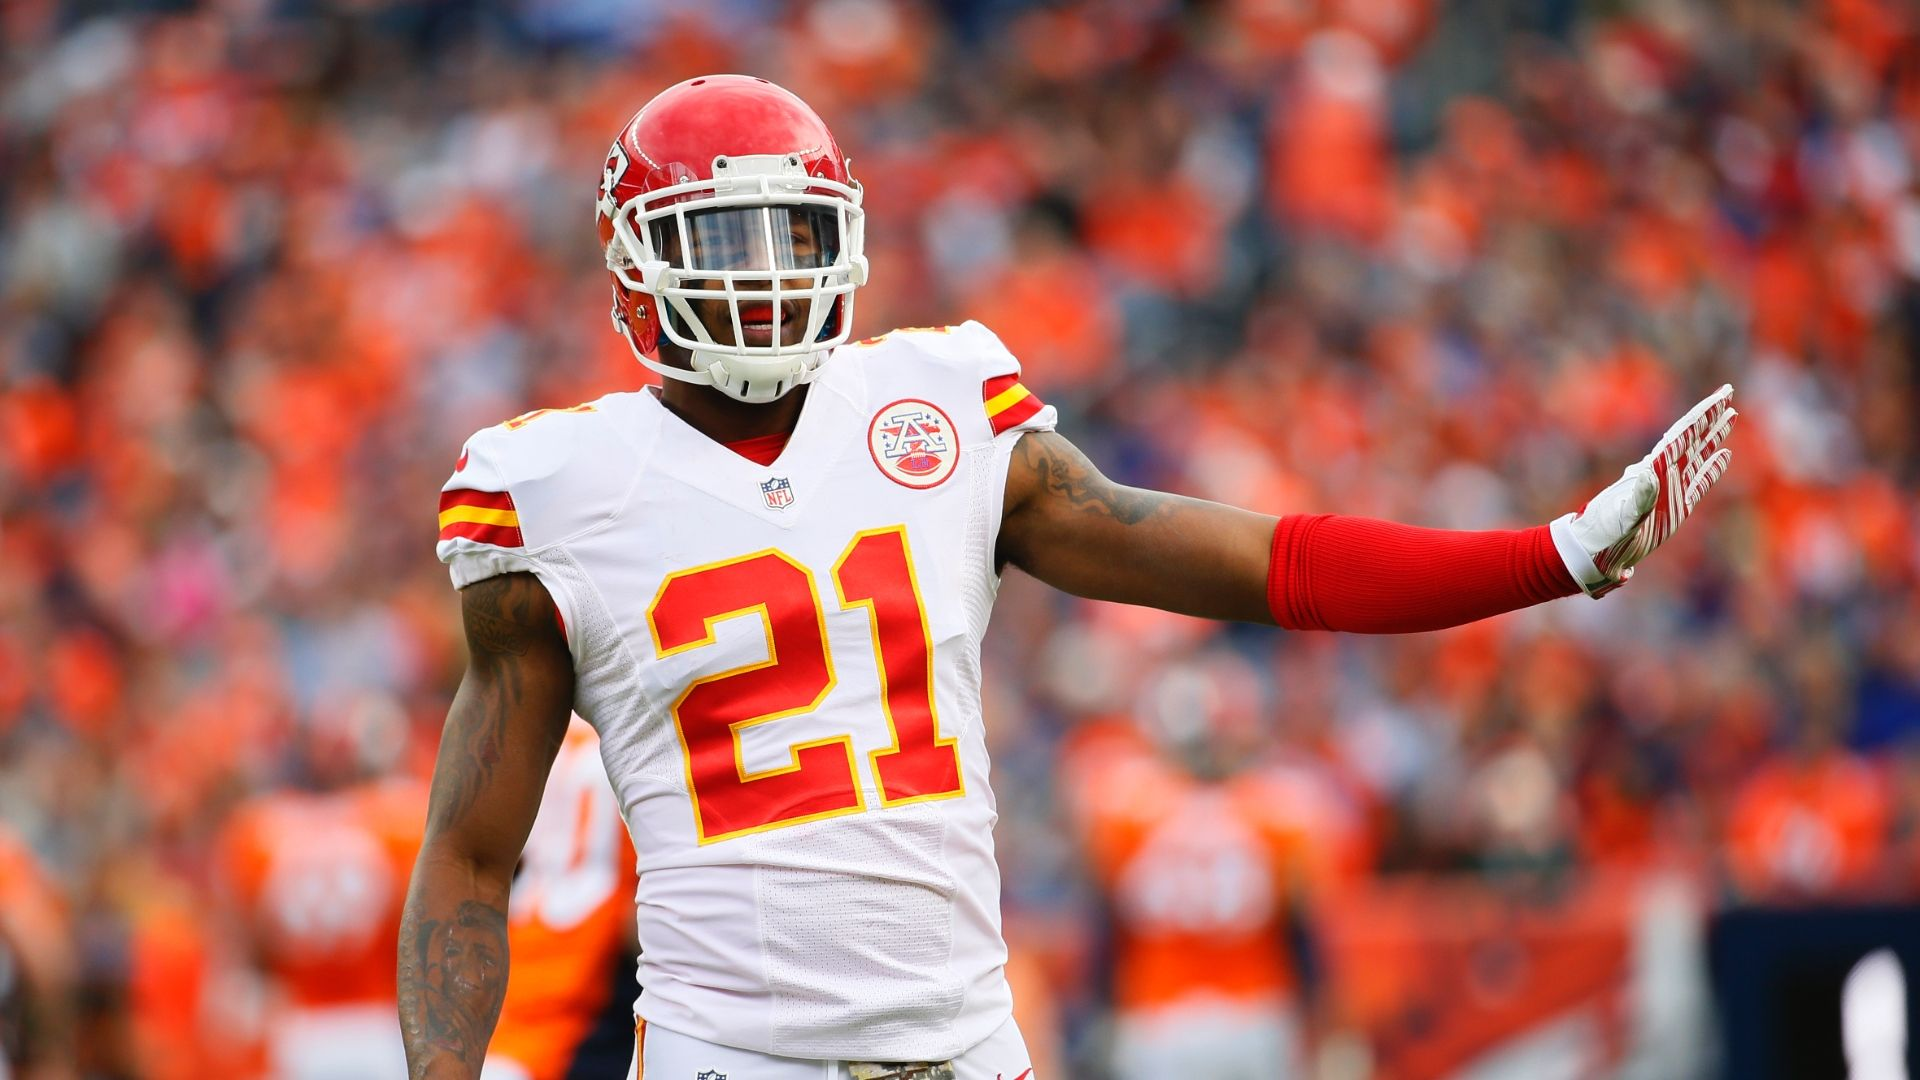 https://secure.espncdn.com/combiner/i?img=/media/motion/2016/0310/dm_160310_nfl_chiefs_smith_nation/dm_160310_nfl_chiefs_smith_nation.jpg